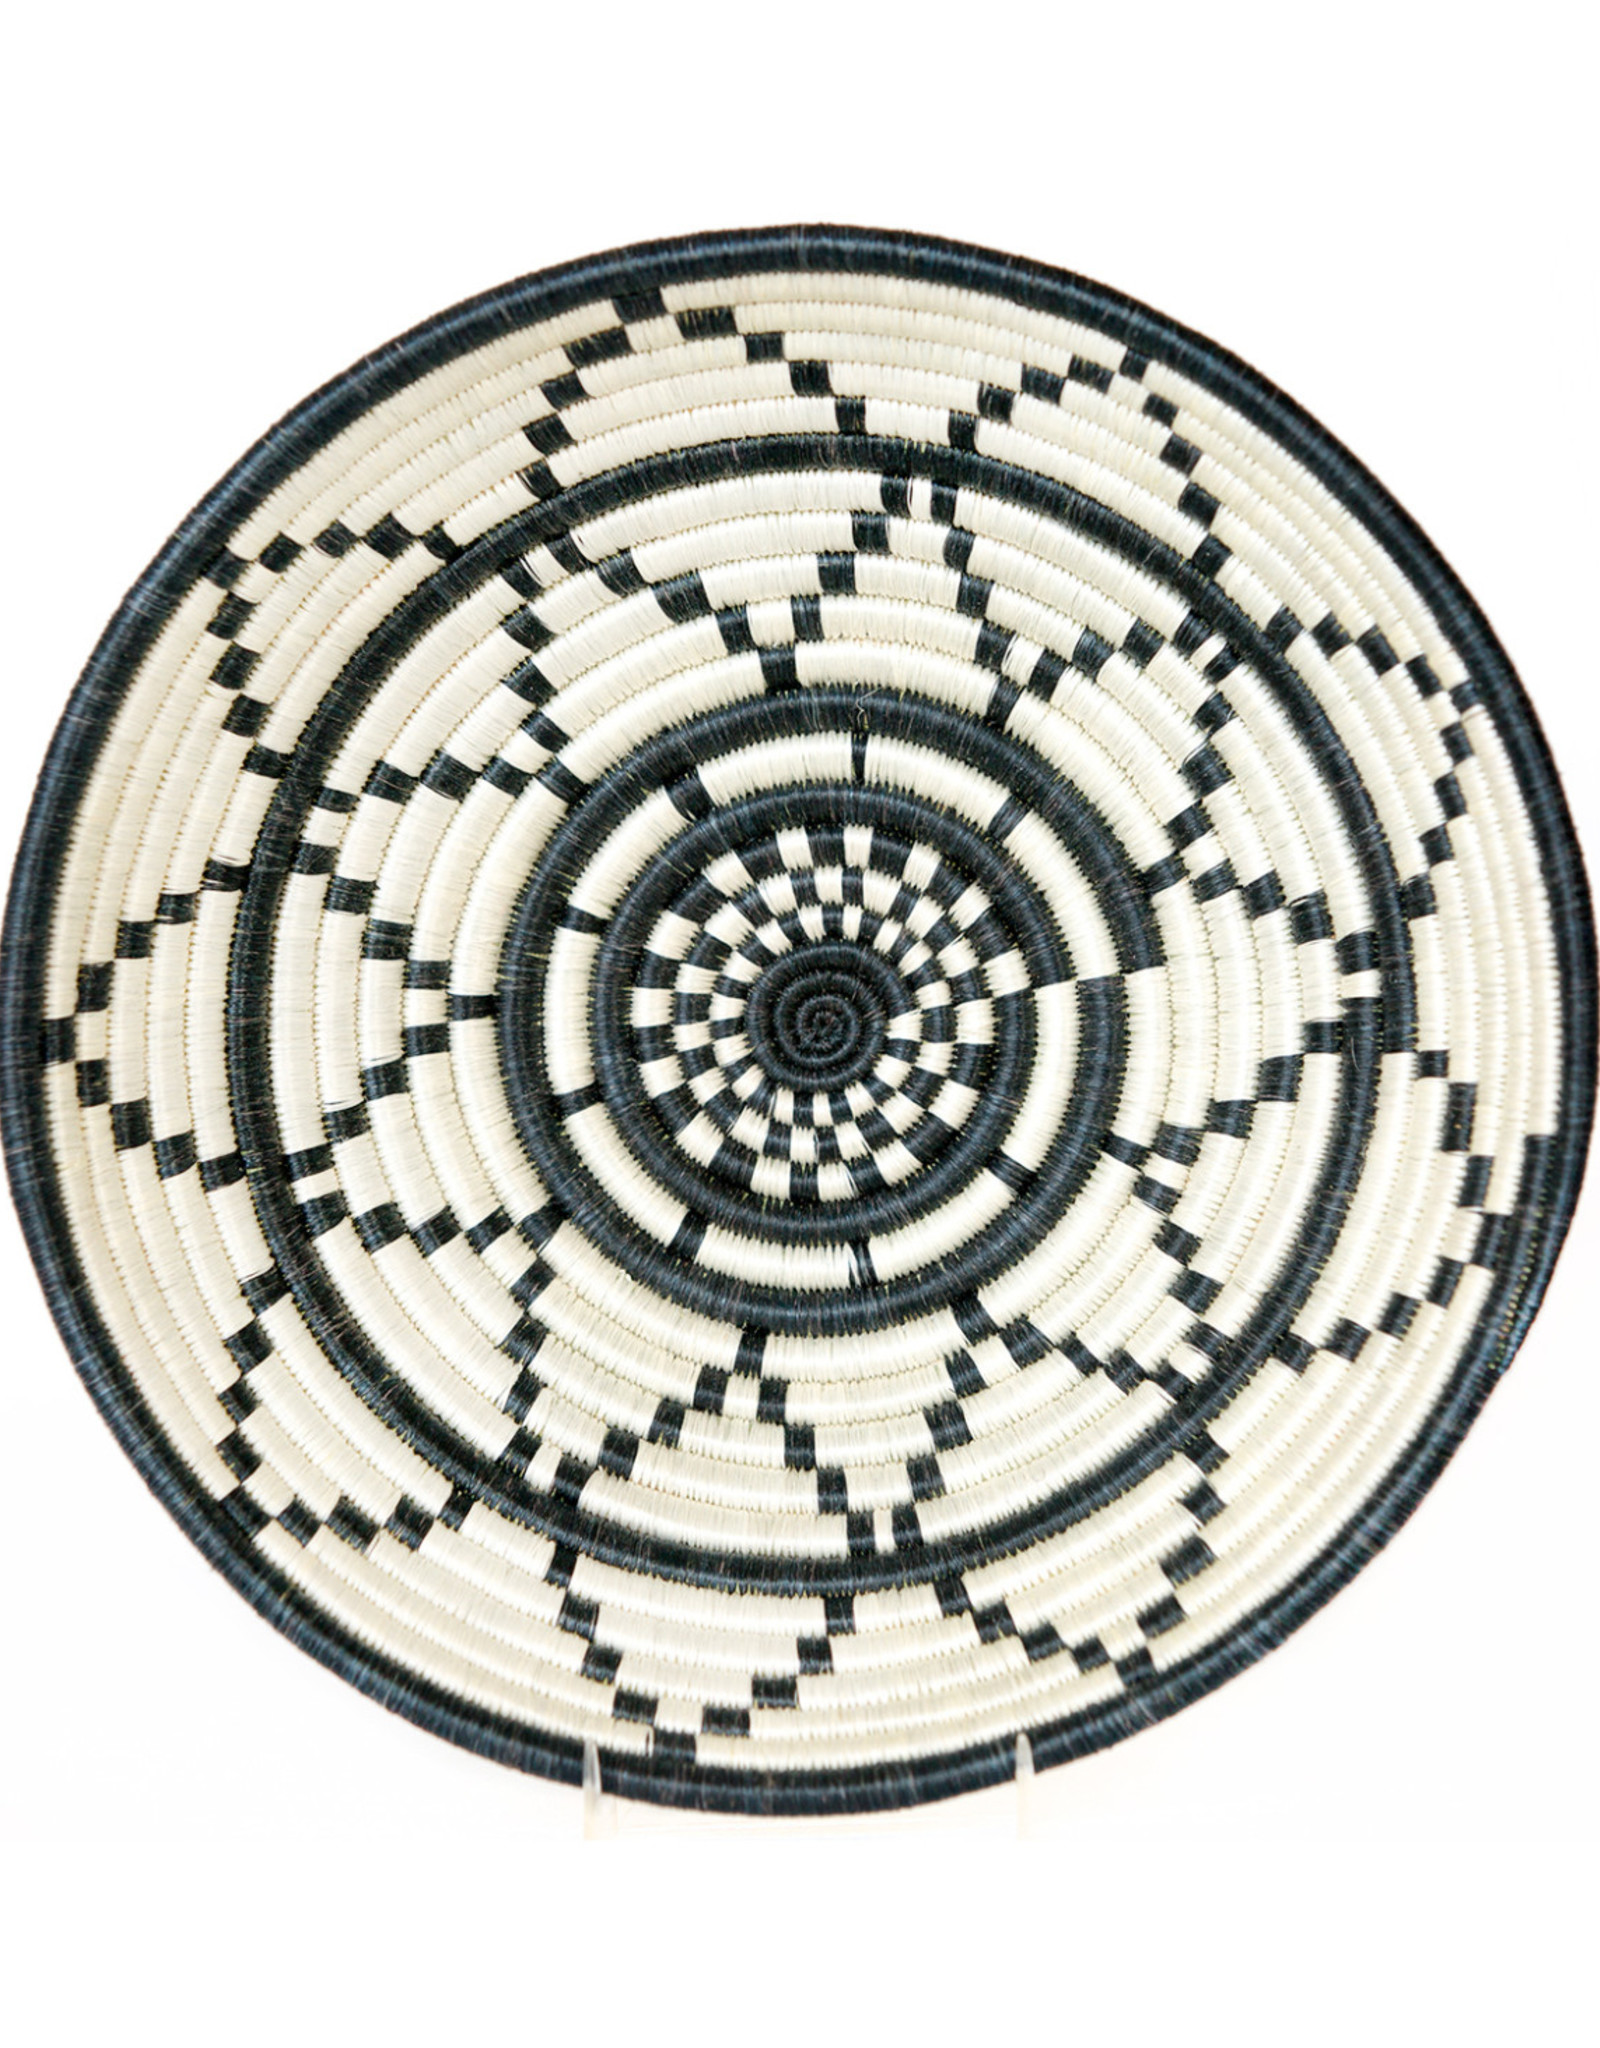 Large Black and White Thousand Hills Bowl